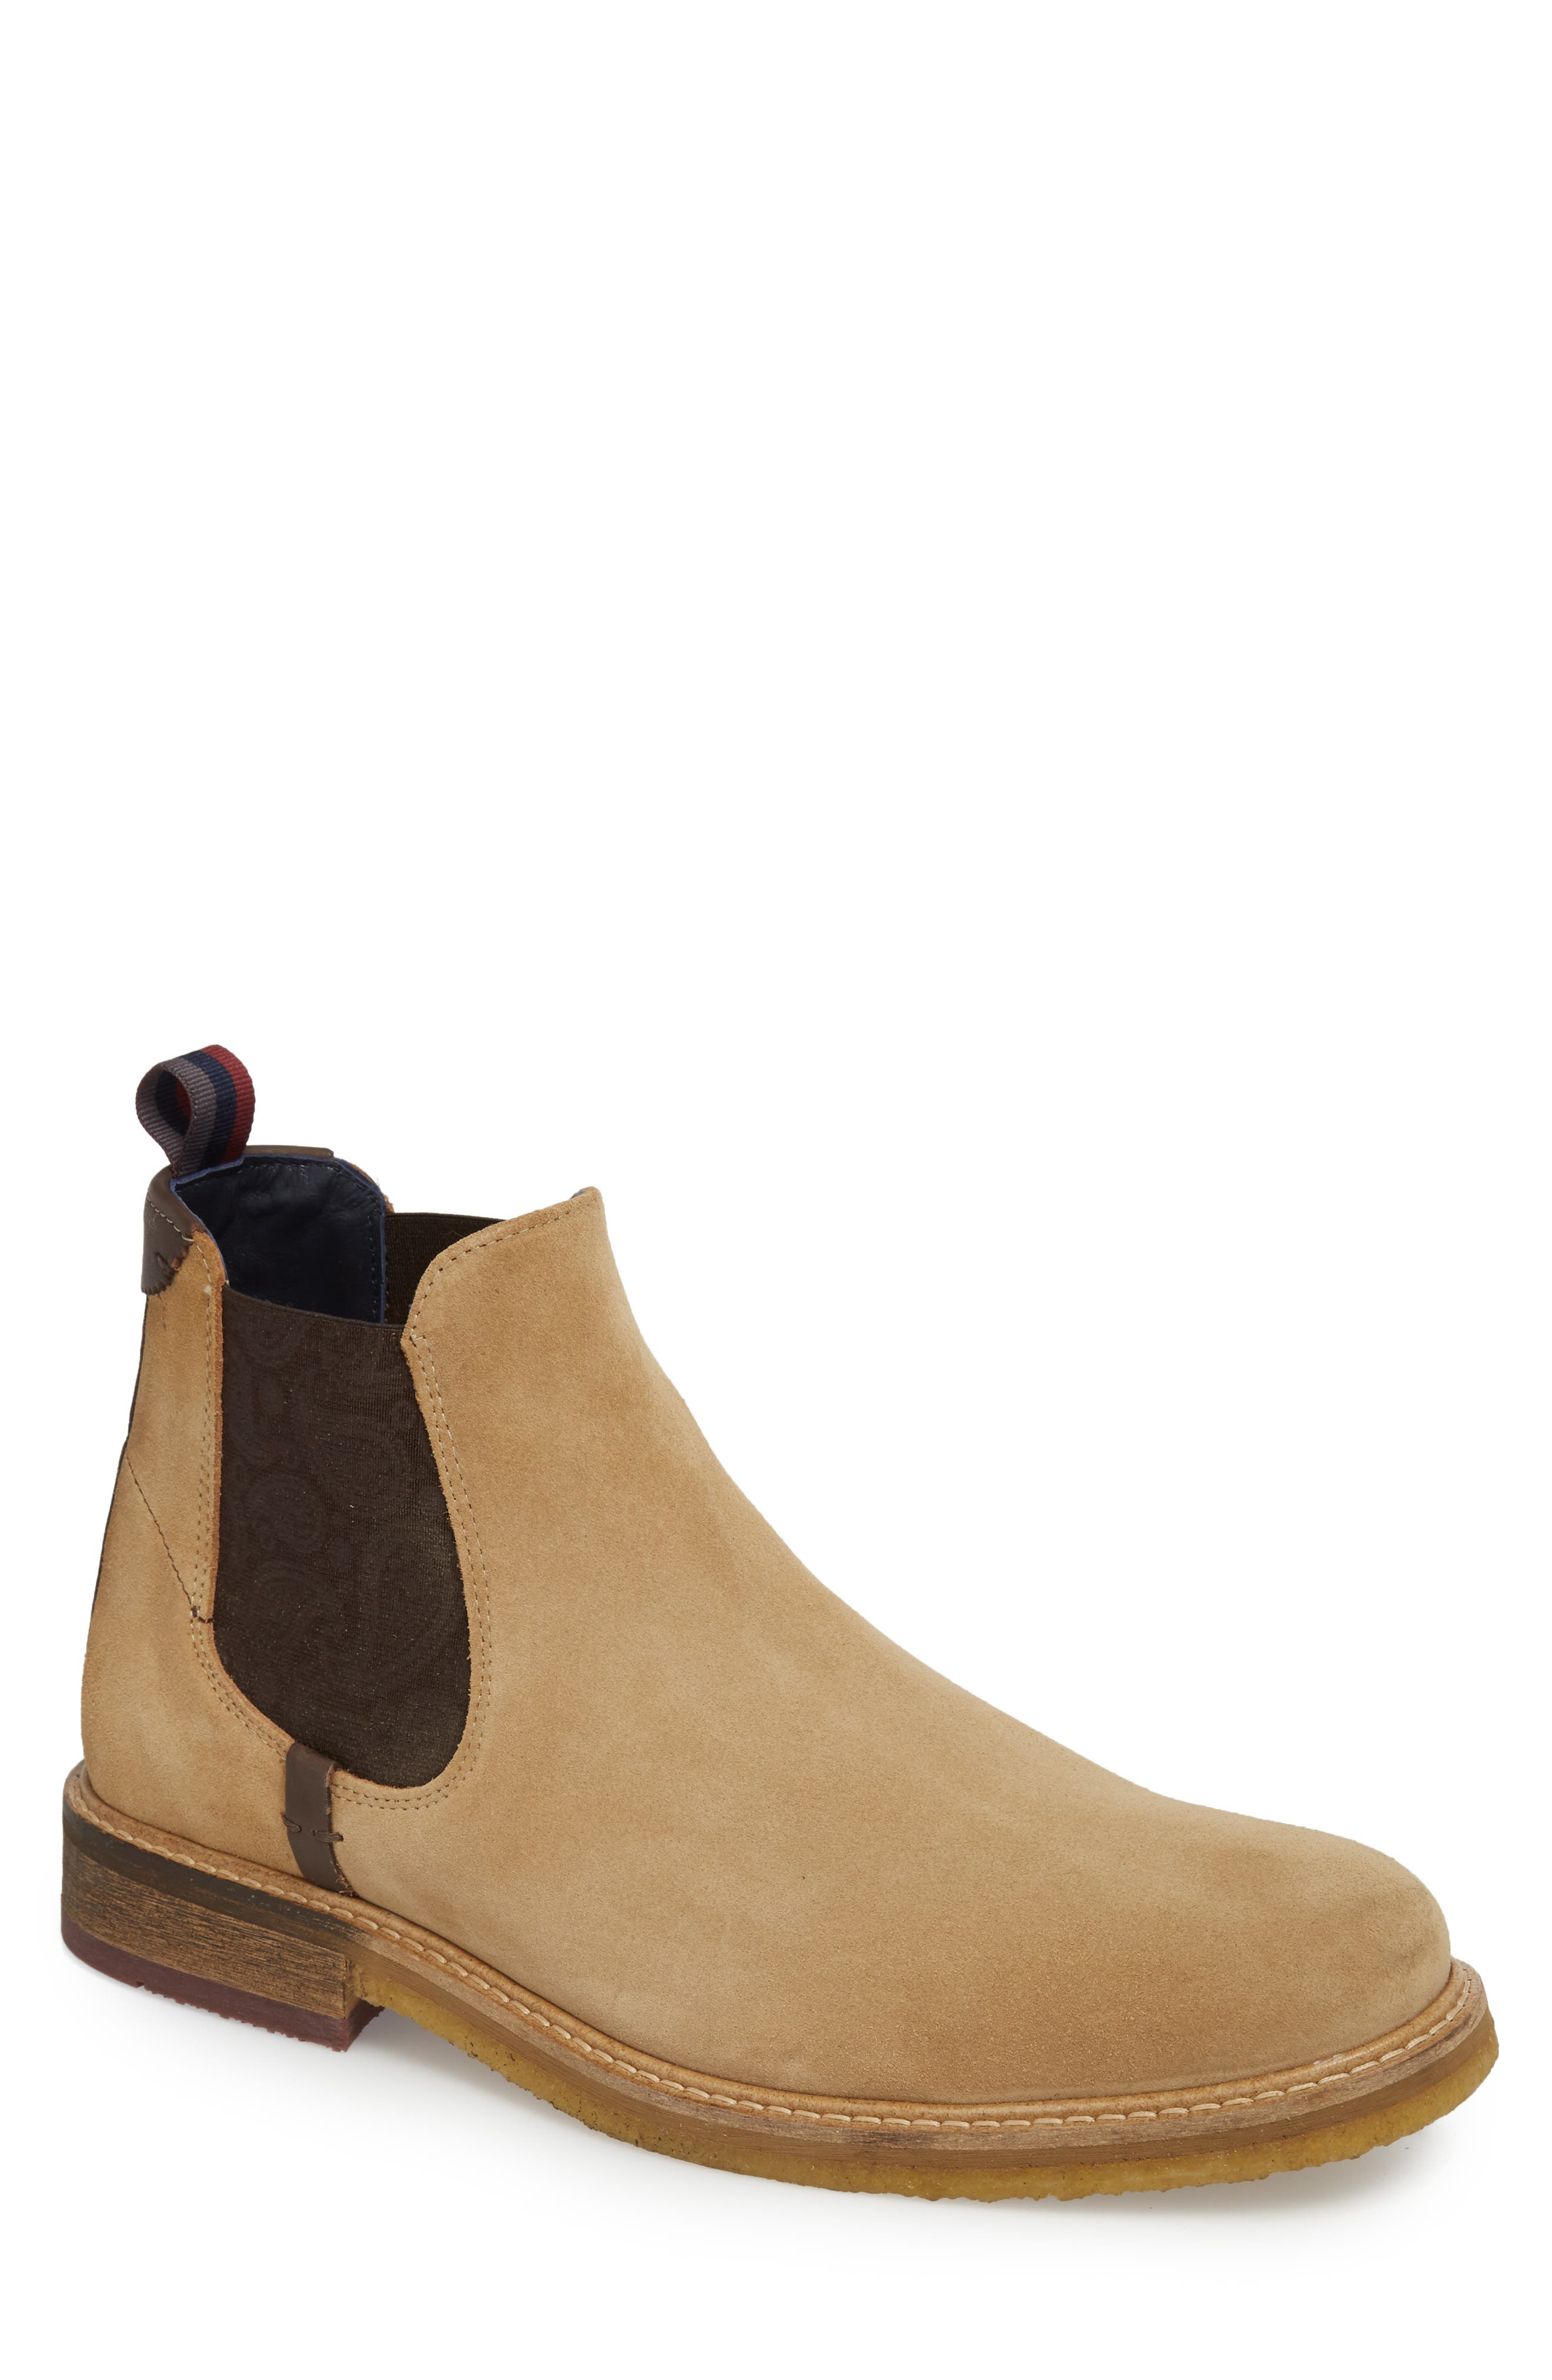 Bronzo Chelsea Boot,                             Main thumbnail 1, color,                             Sand Suede